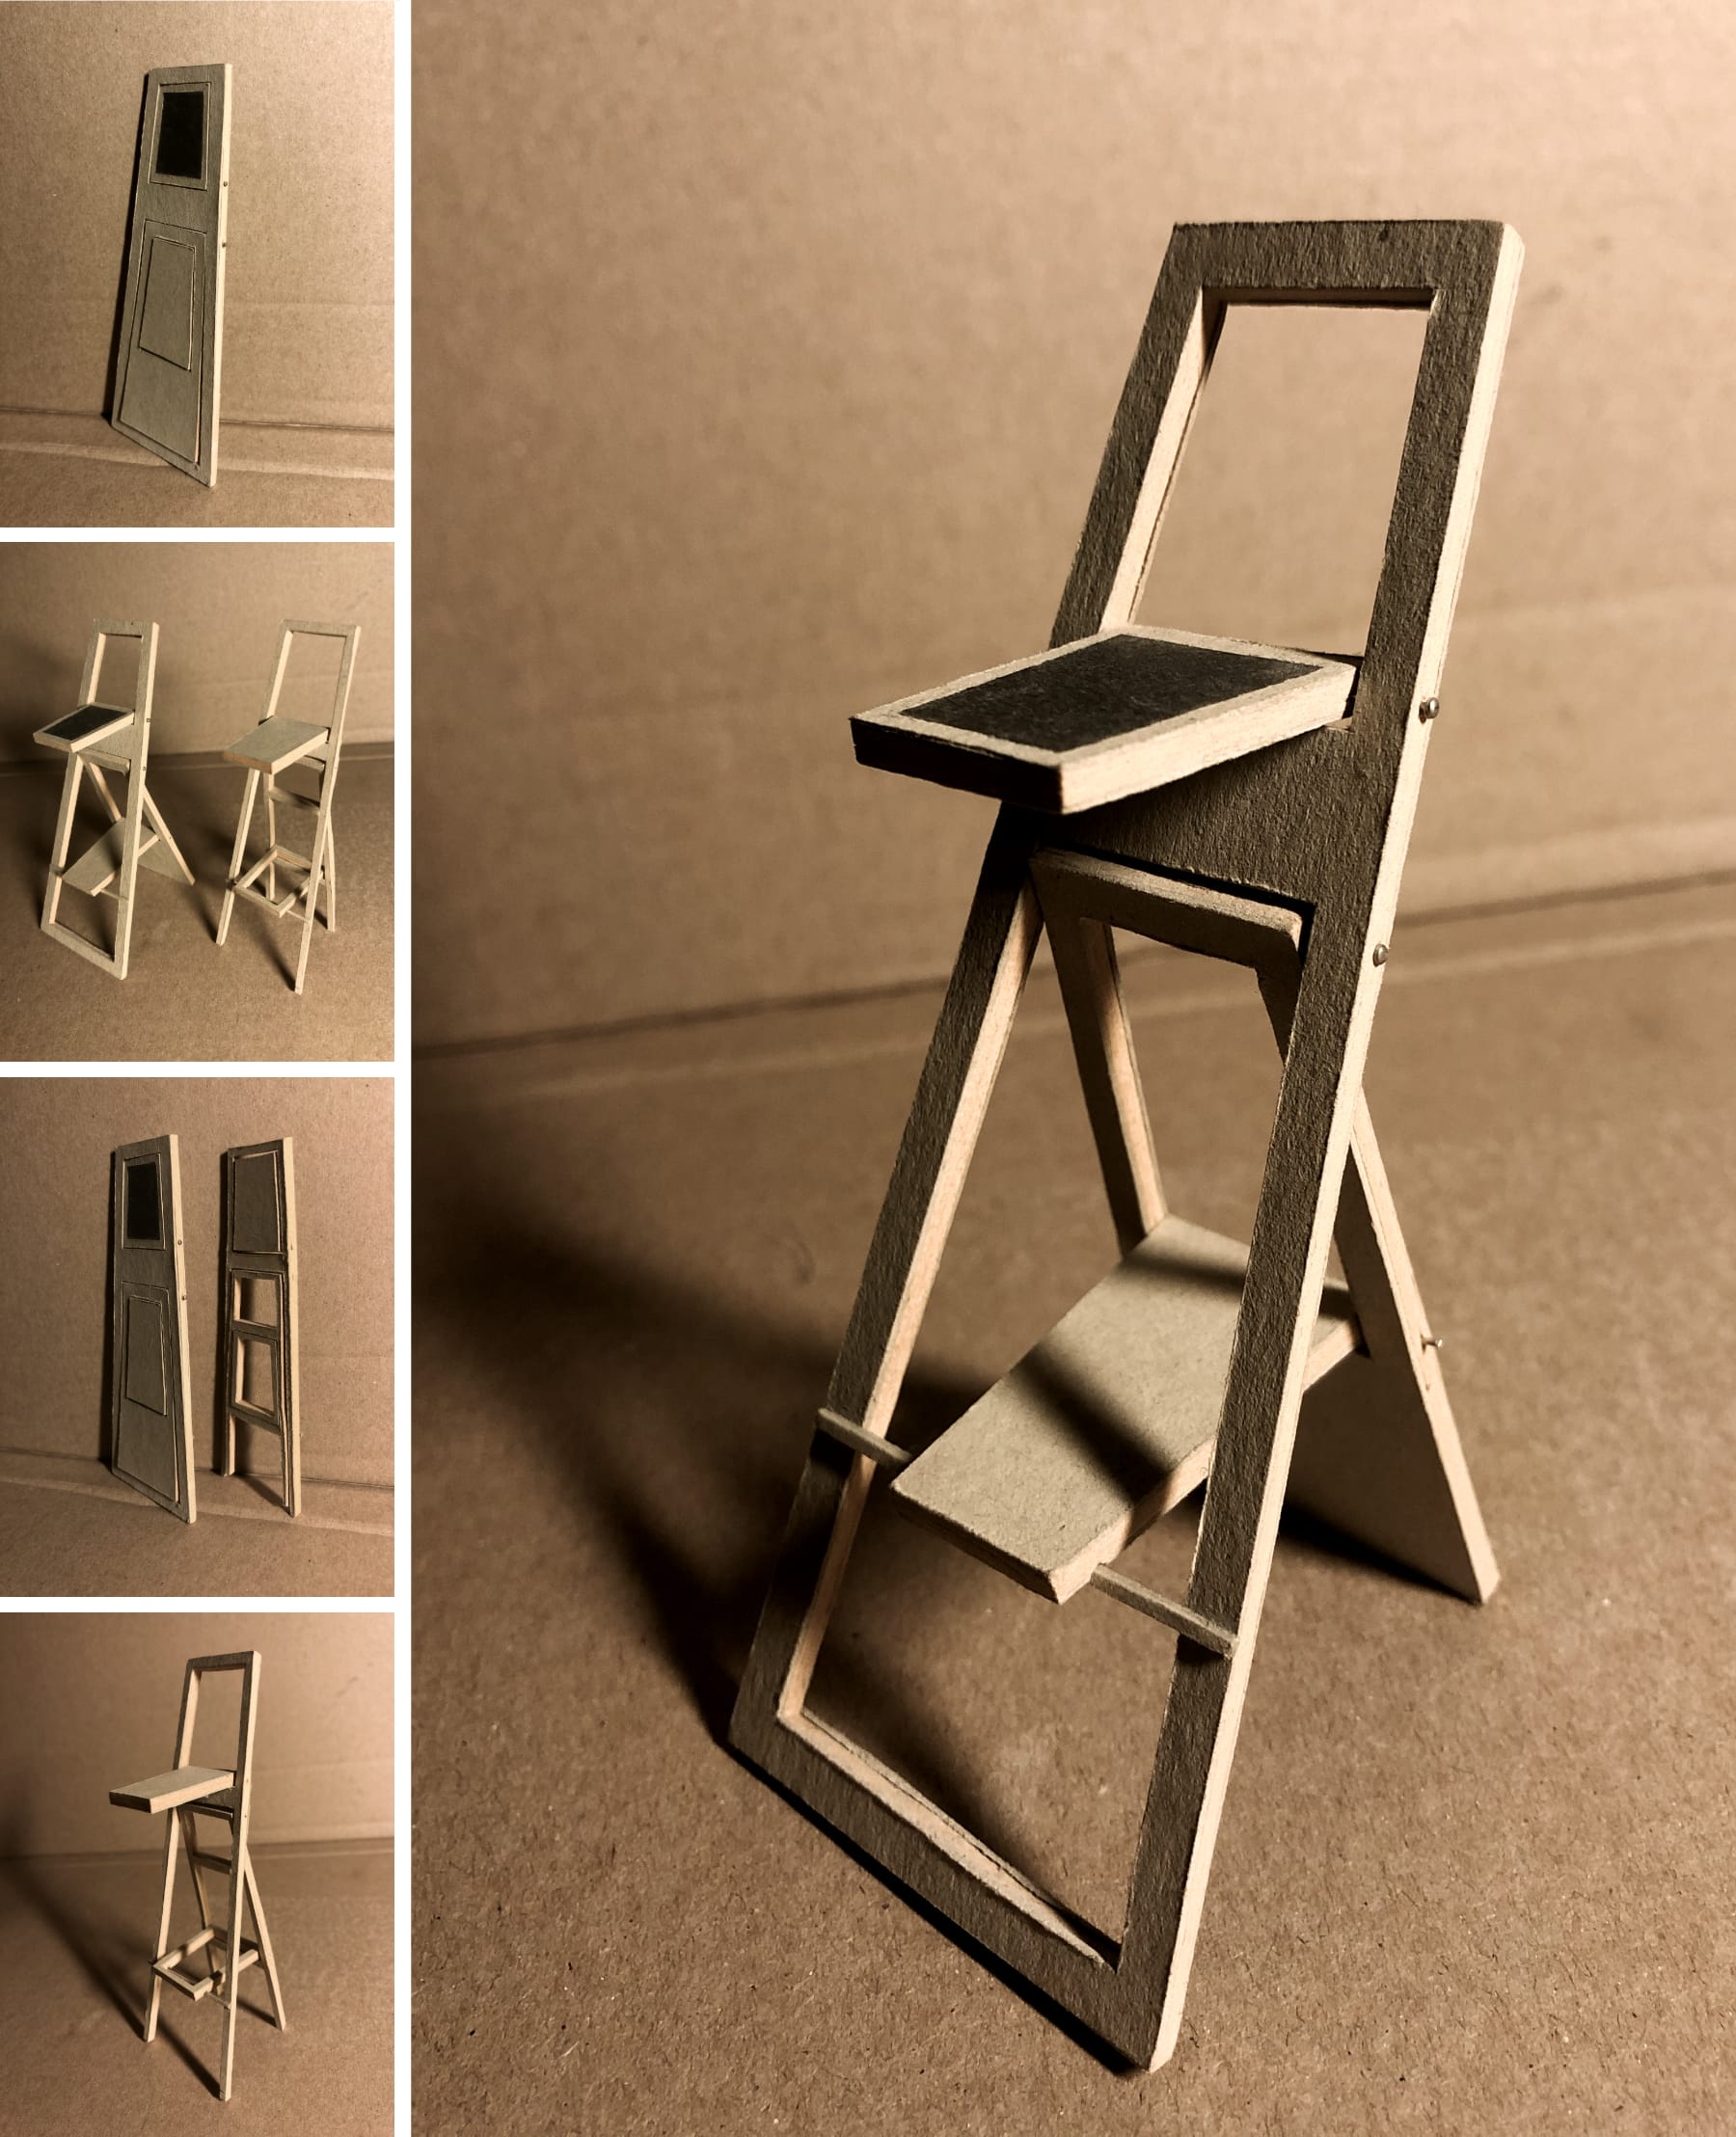 Photo: cardboard model of the blog author's collapsible barstool